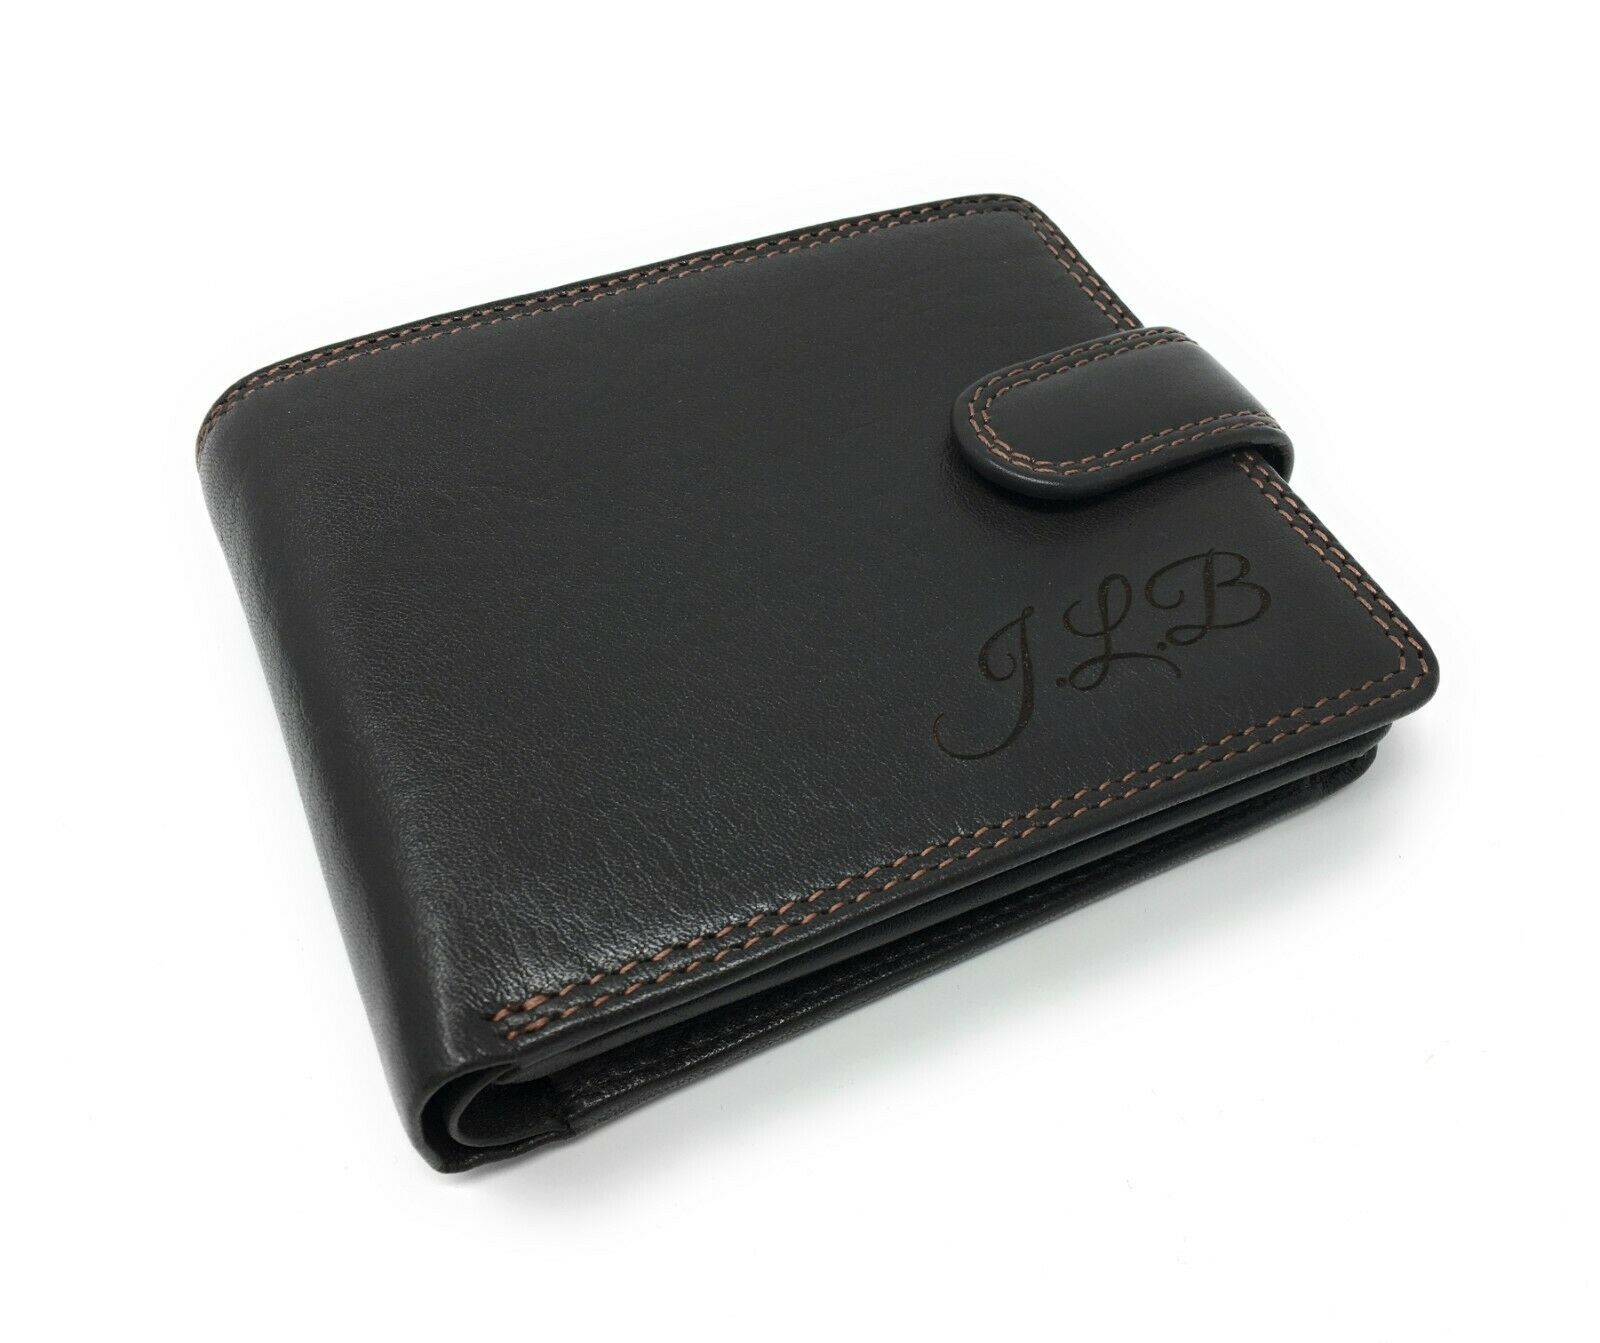 Unusual Personalised RFID Leather Wallet Fathers Day Best man free message plate